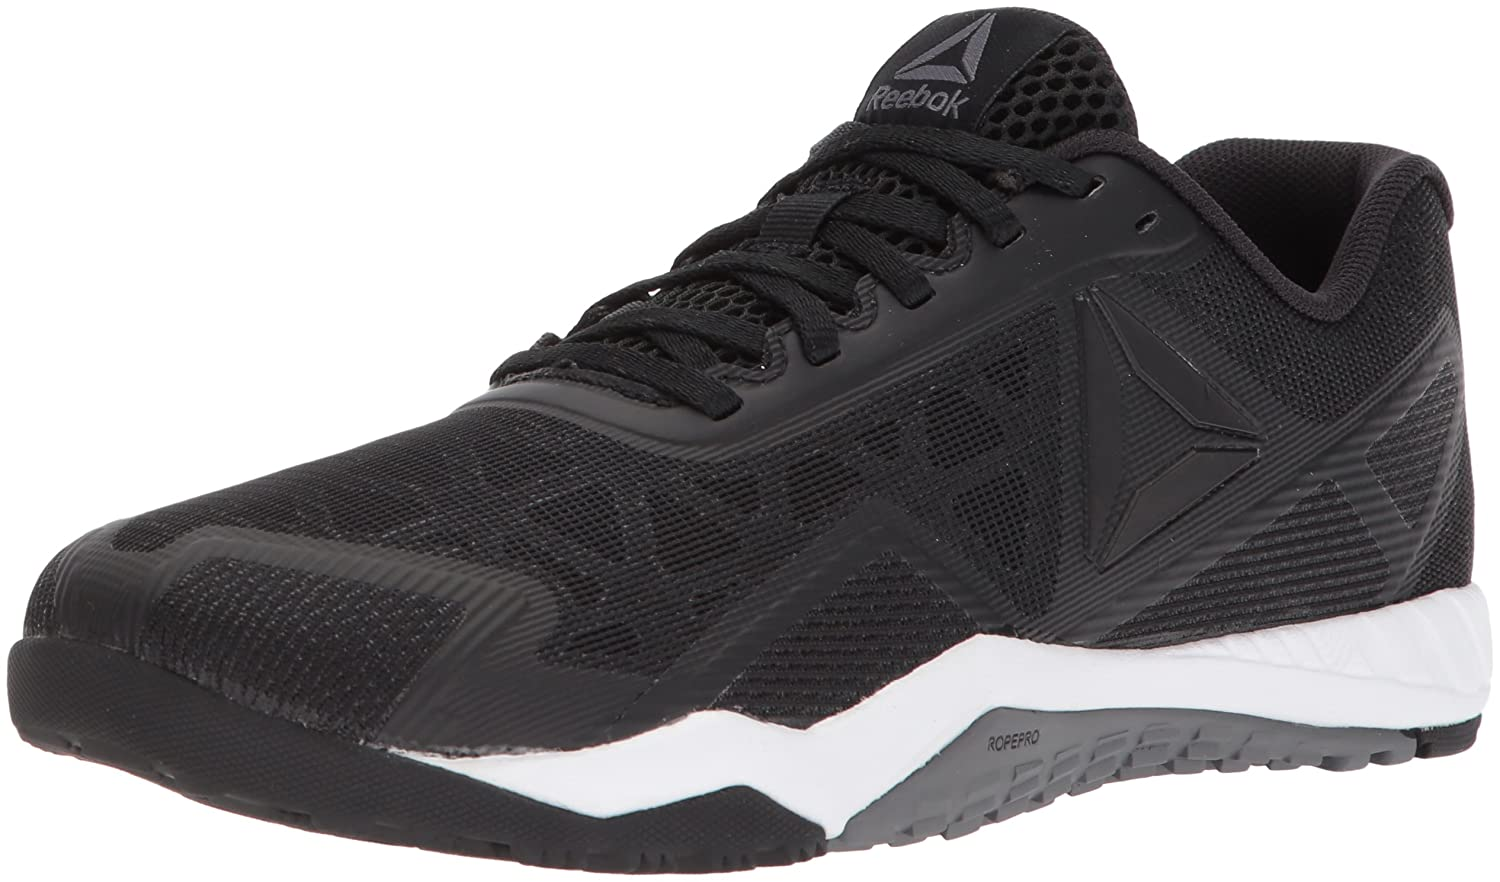 Reebok Women's ROS Workout Tr 2-0 Cross-Trainer Shoe B071J4GDNZ 10 B(M) US|Black/Alloy/White